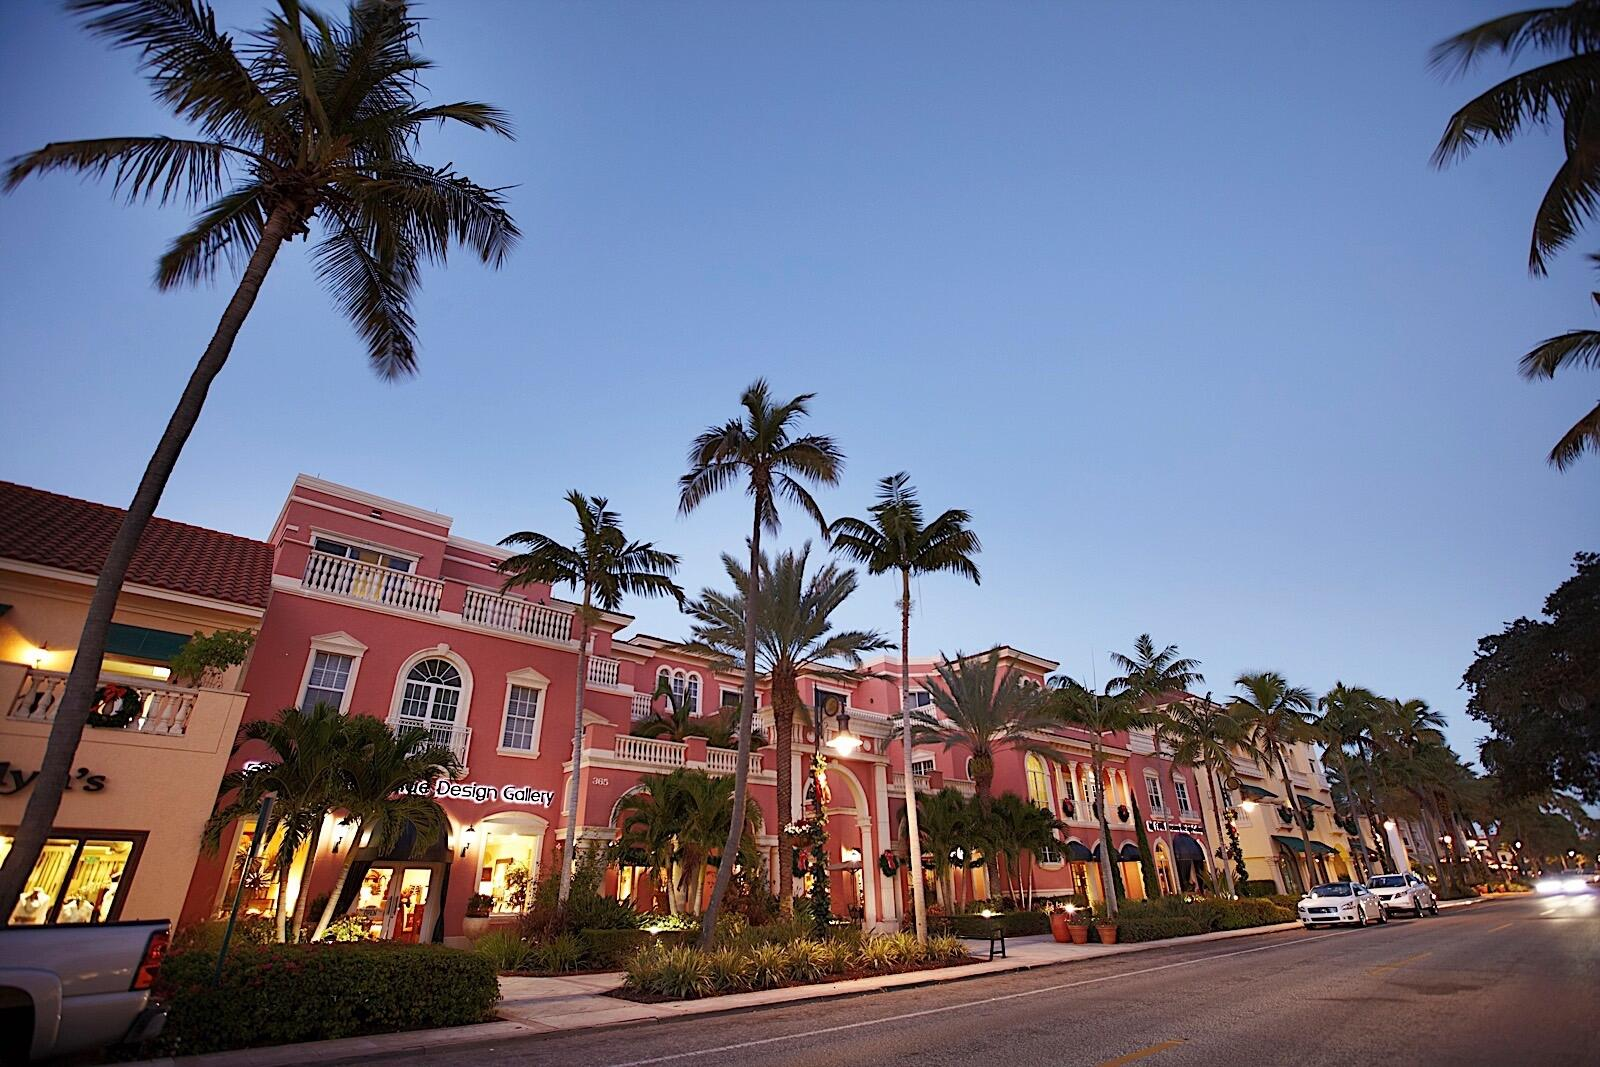 Fifth ave in Naples, FL